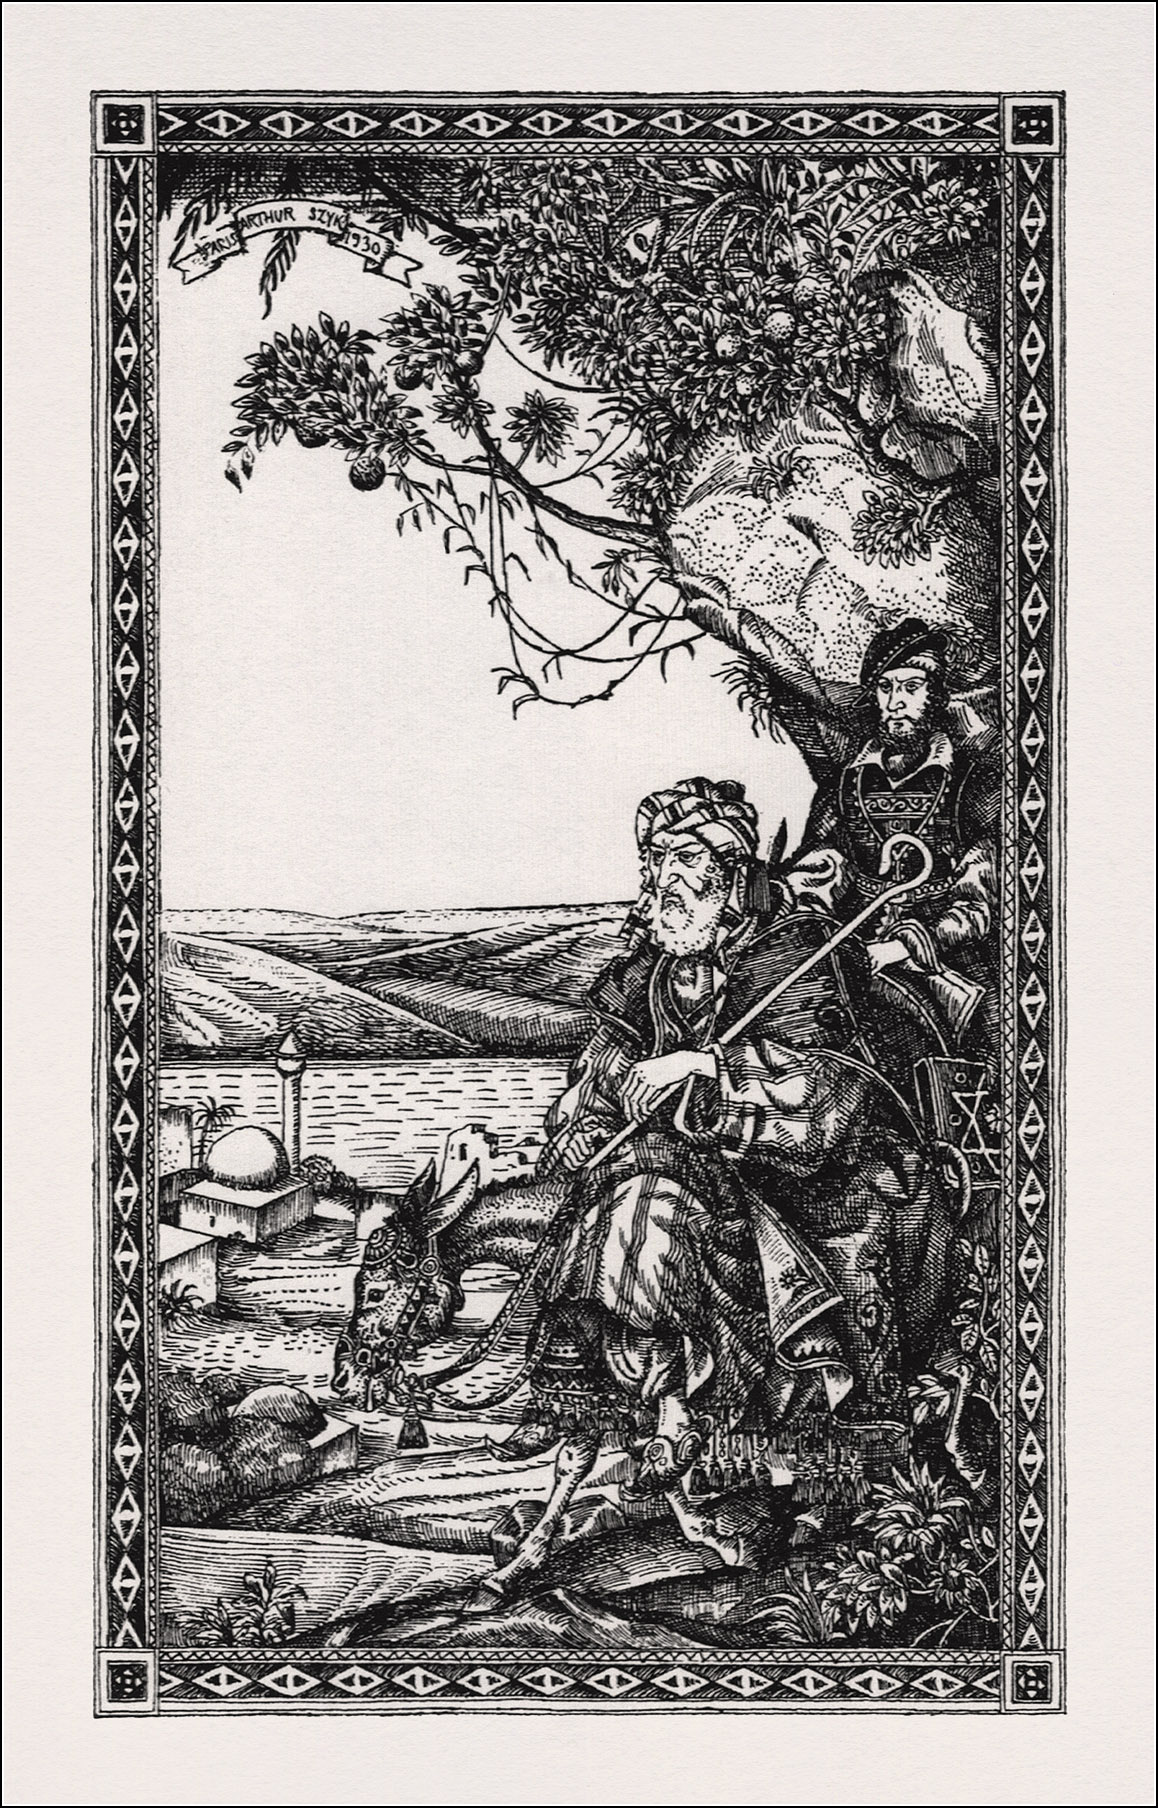 Arthur Szyk, The last days of Shylock